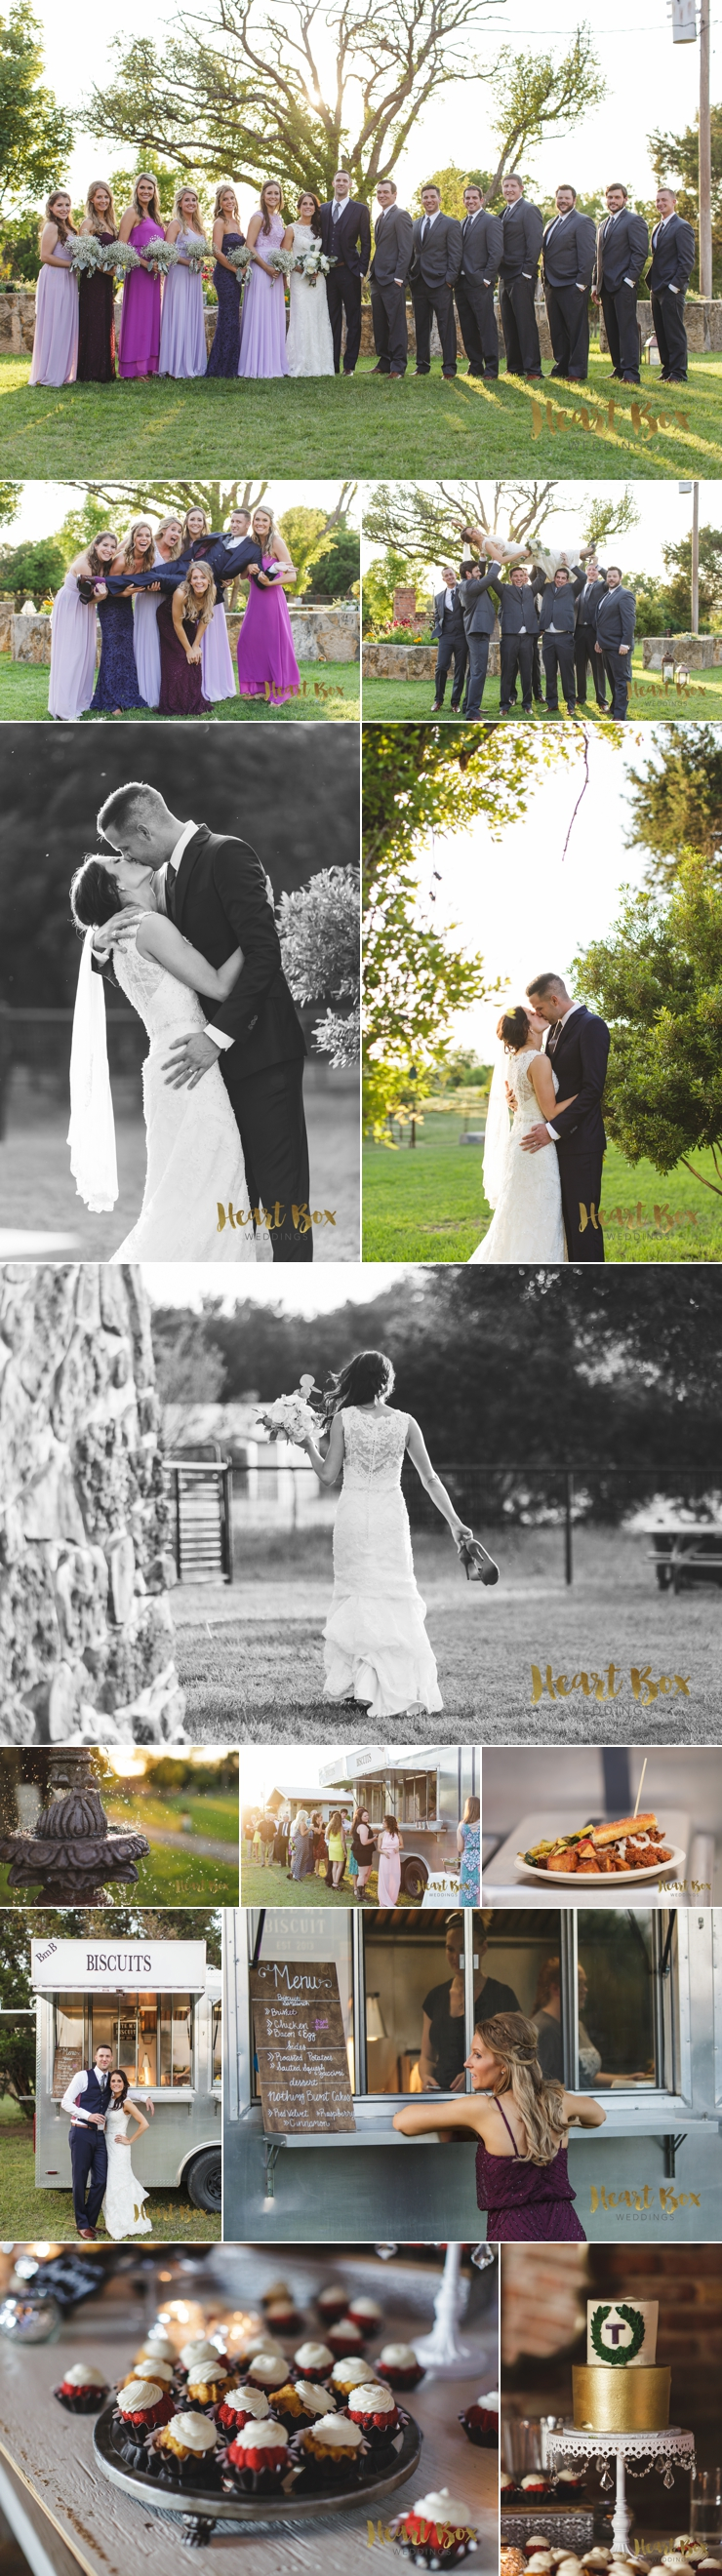 Thomas Wedding Blog Collages 7.jpg